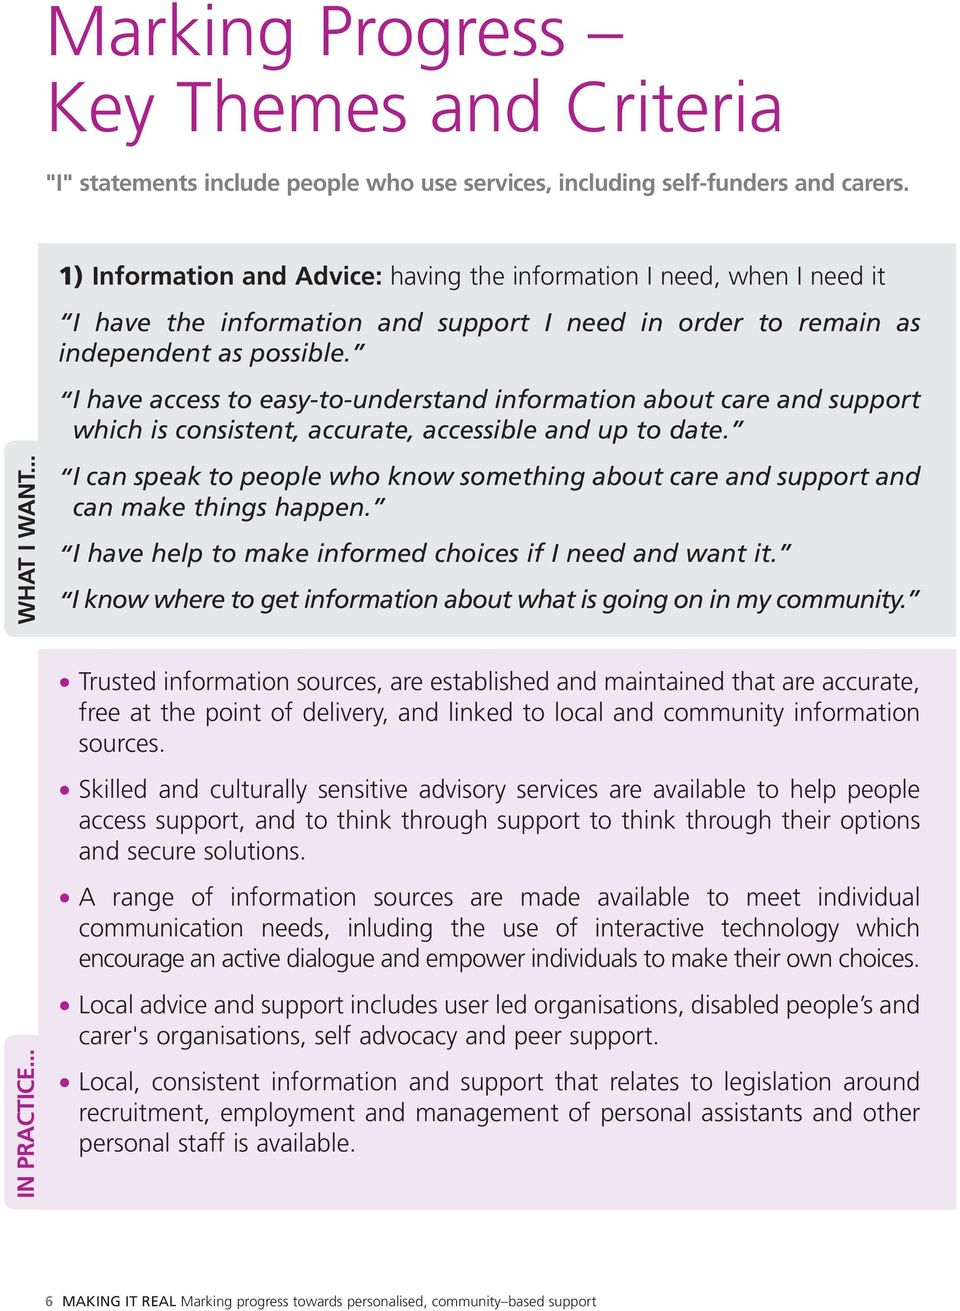 I have access to easy-to-understand information about care and support which is consistent, accurate, accessible and up to date. WHAT I WANT.